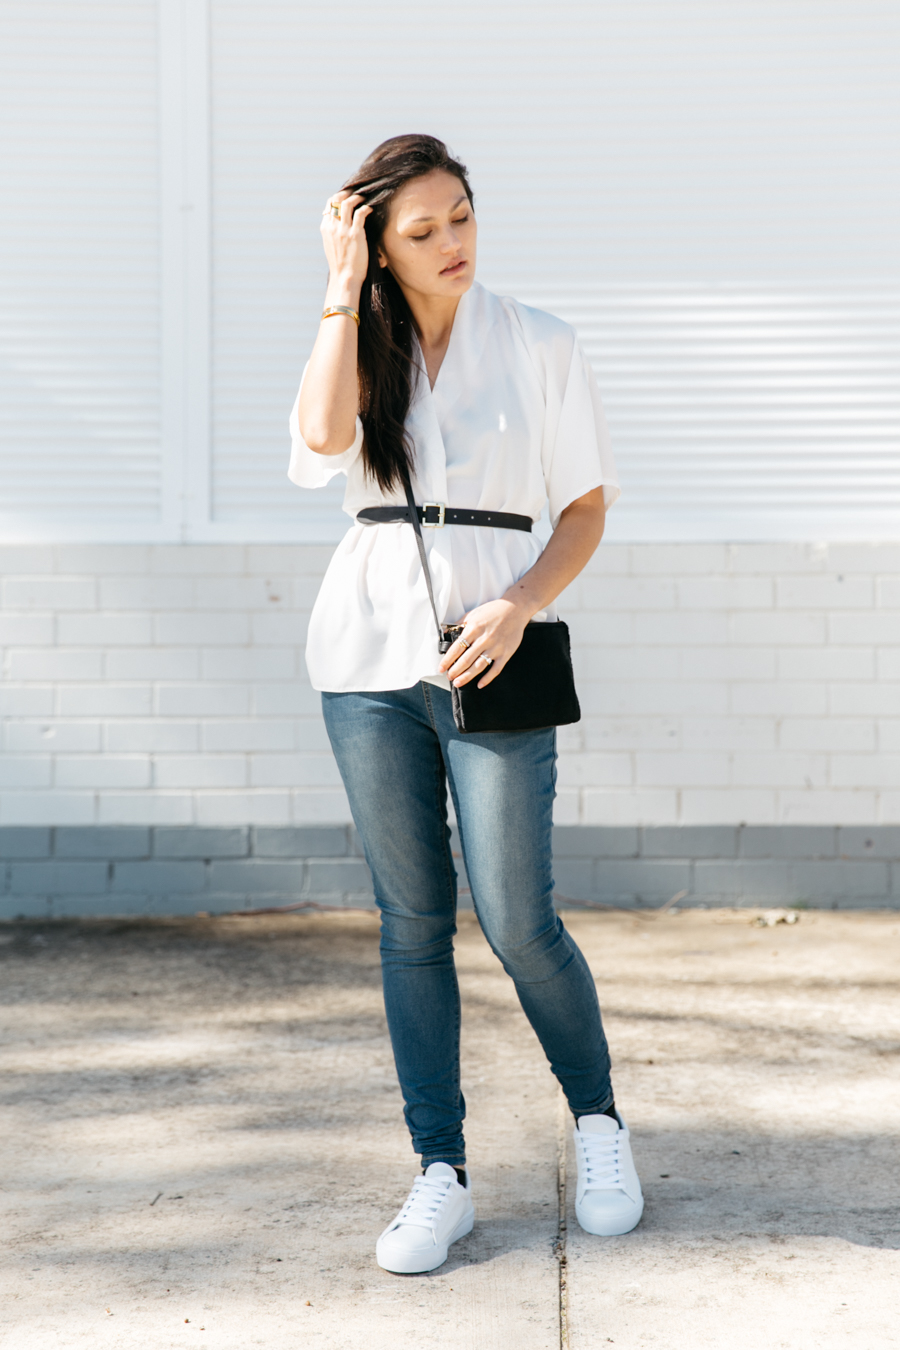 ASOS blogger collaboration: Match Yo Mama, wearing all ASOS: white wrap top, stretch jeggings, white sneakers.